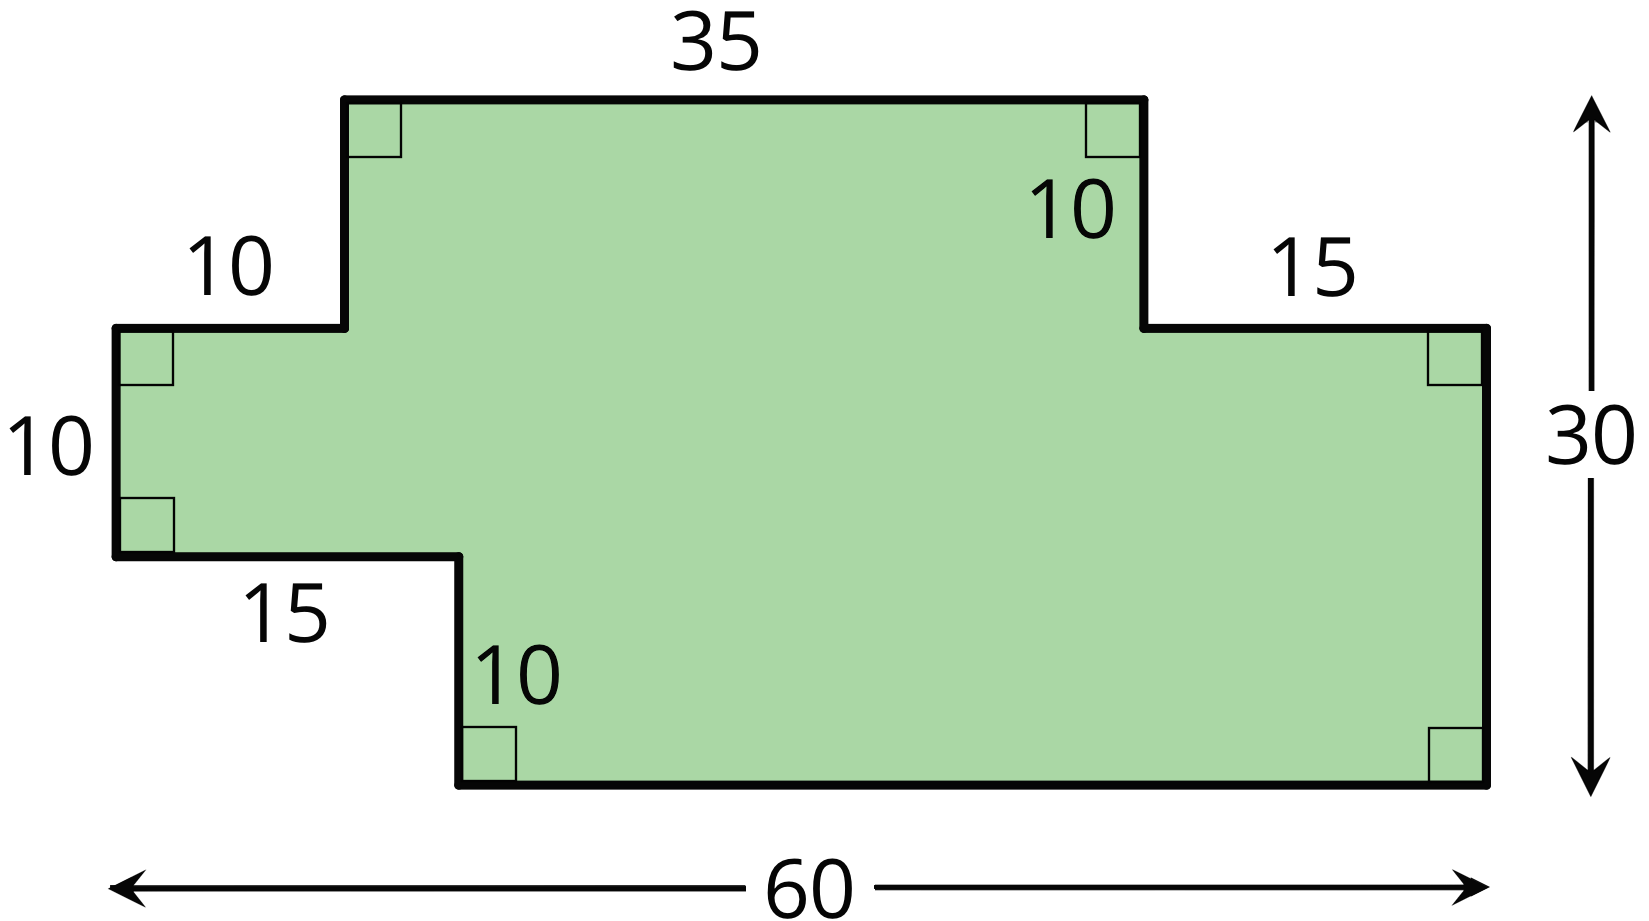 A multi-sided figure. The sides on top measure 10 units, 35 units, and 15 units. Two of the three sides on the left measure 10 units. One of the two sides on the right measures 10 units. One of the two sides on the bottom measure 15 units. The total width of the figure is 60 units, and the total height is 30 units. All angles are right angles.